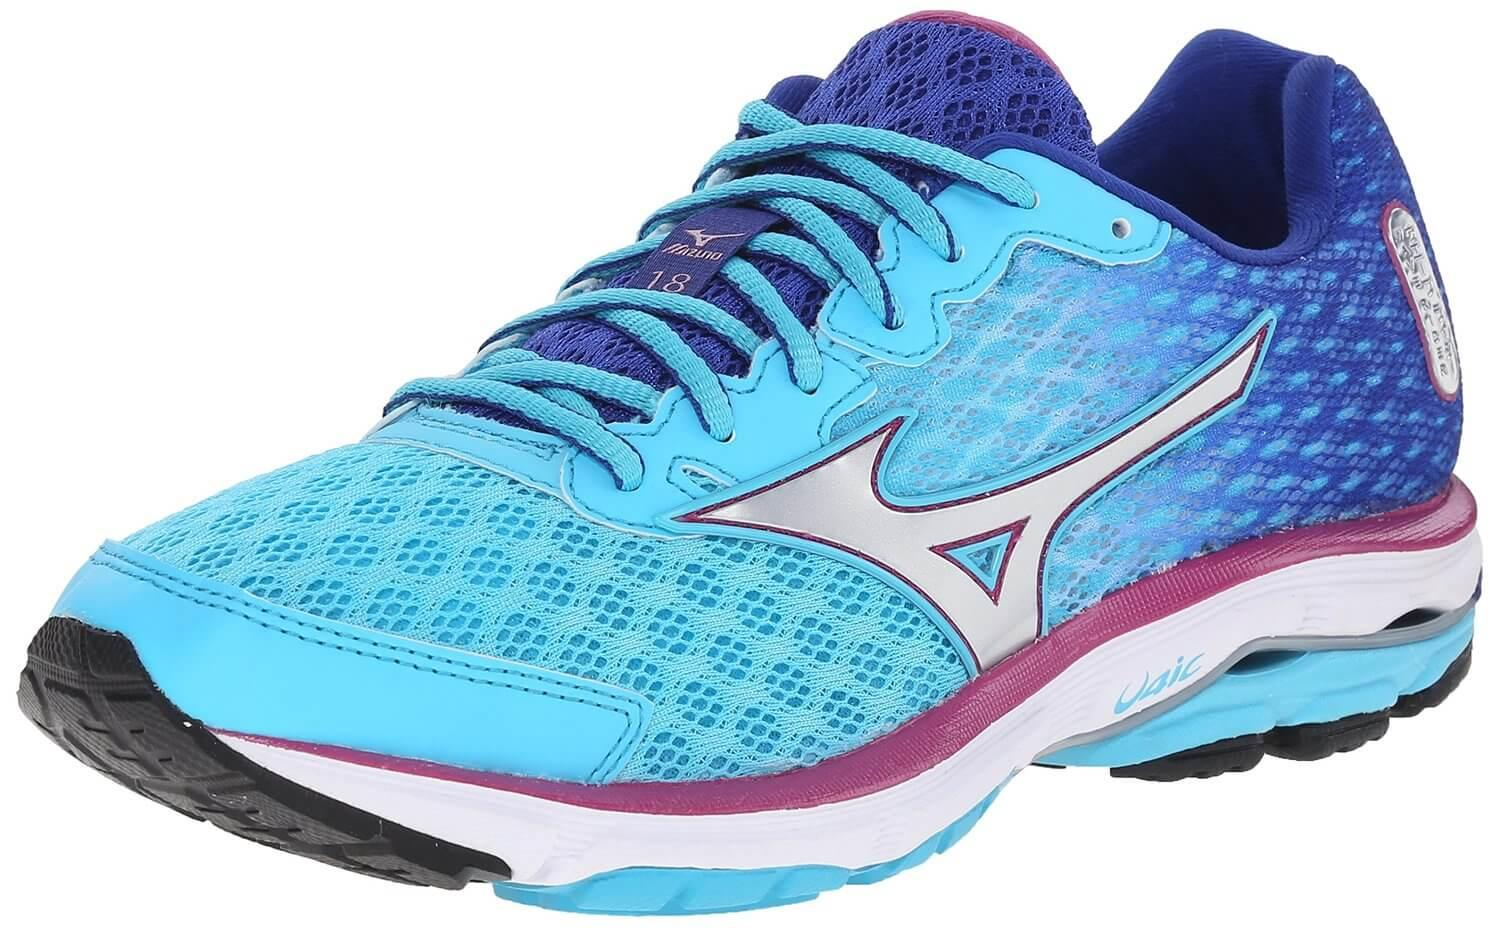 cheap for discount 6e6f8 56442 mizuno wave rider 18 mens